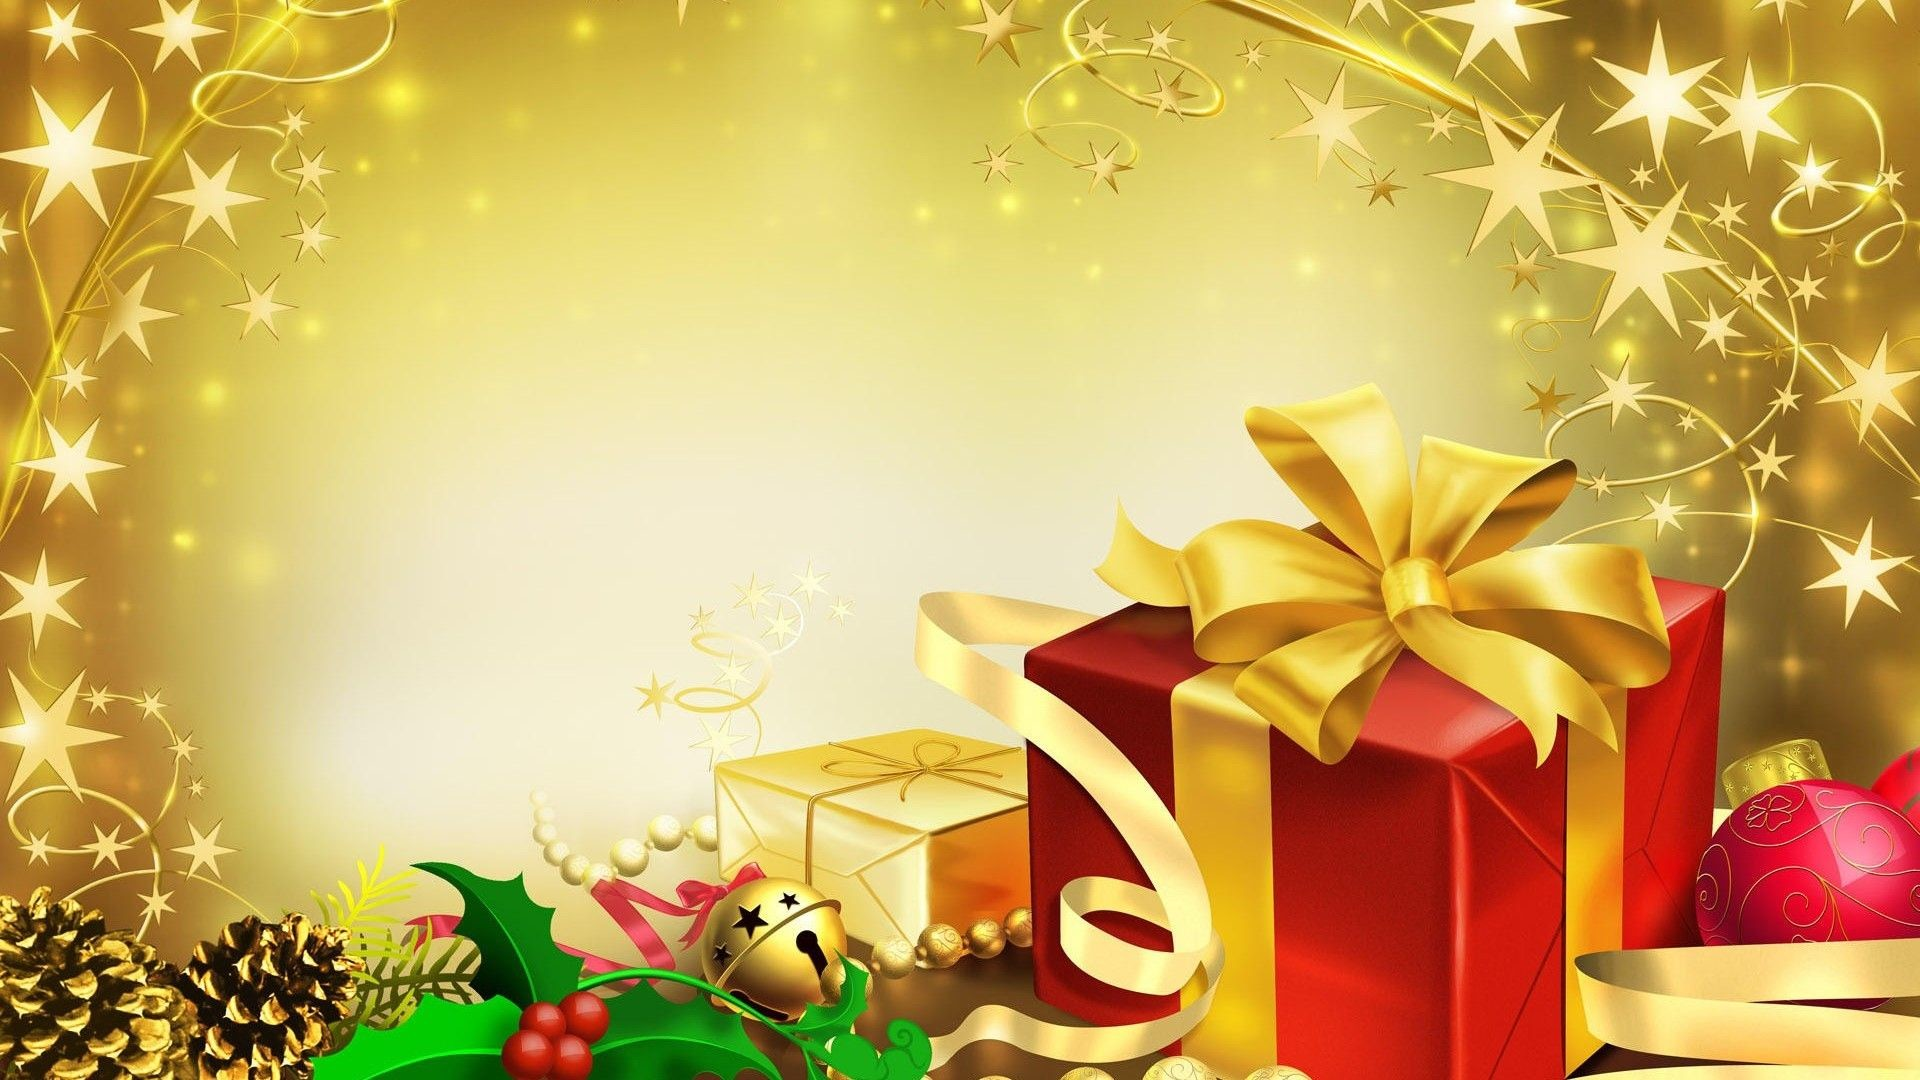 Christmas Present Wallpapers by Oscar Field #5